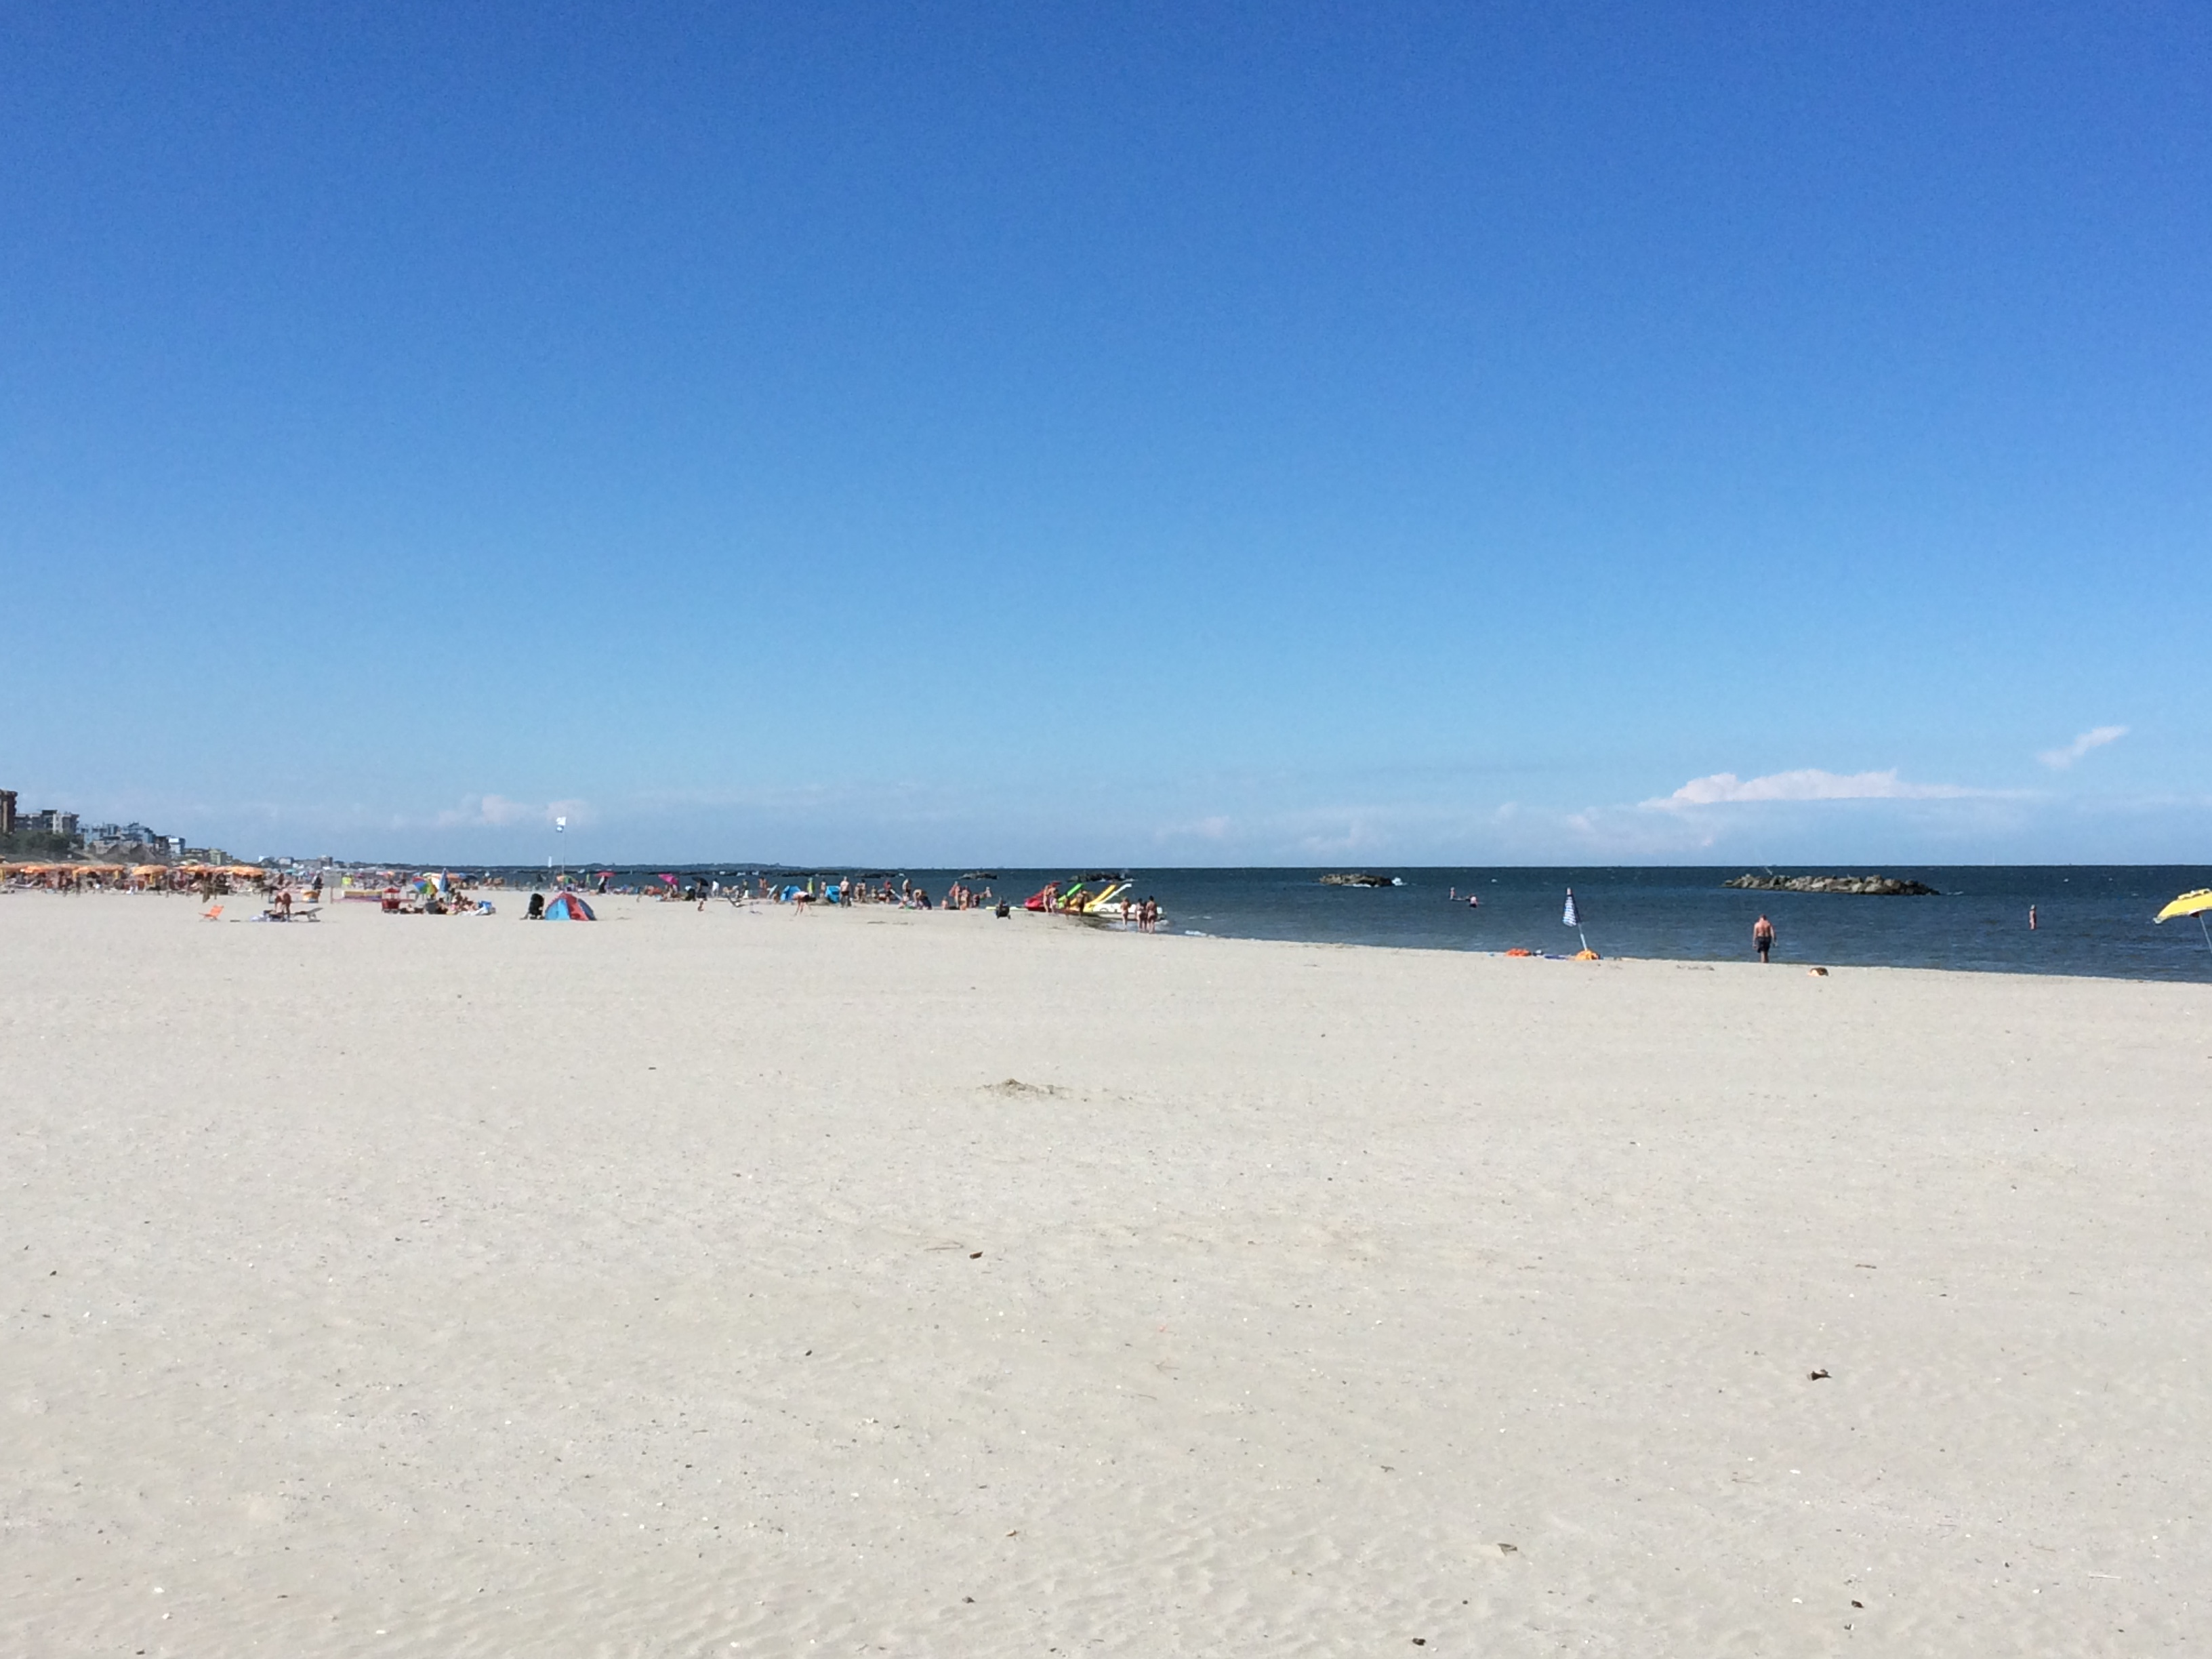 Stunning white sandy beach at Spiaggia e Mare Holiday Park, Italy